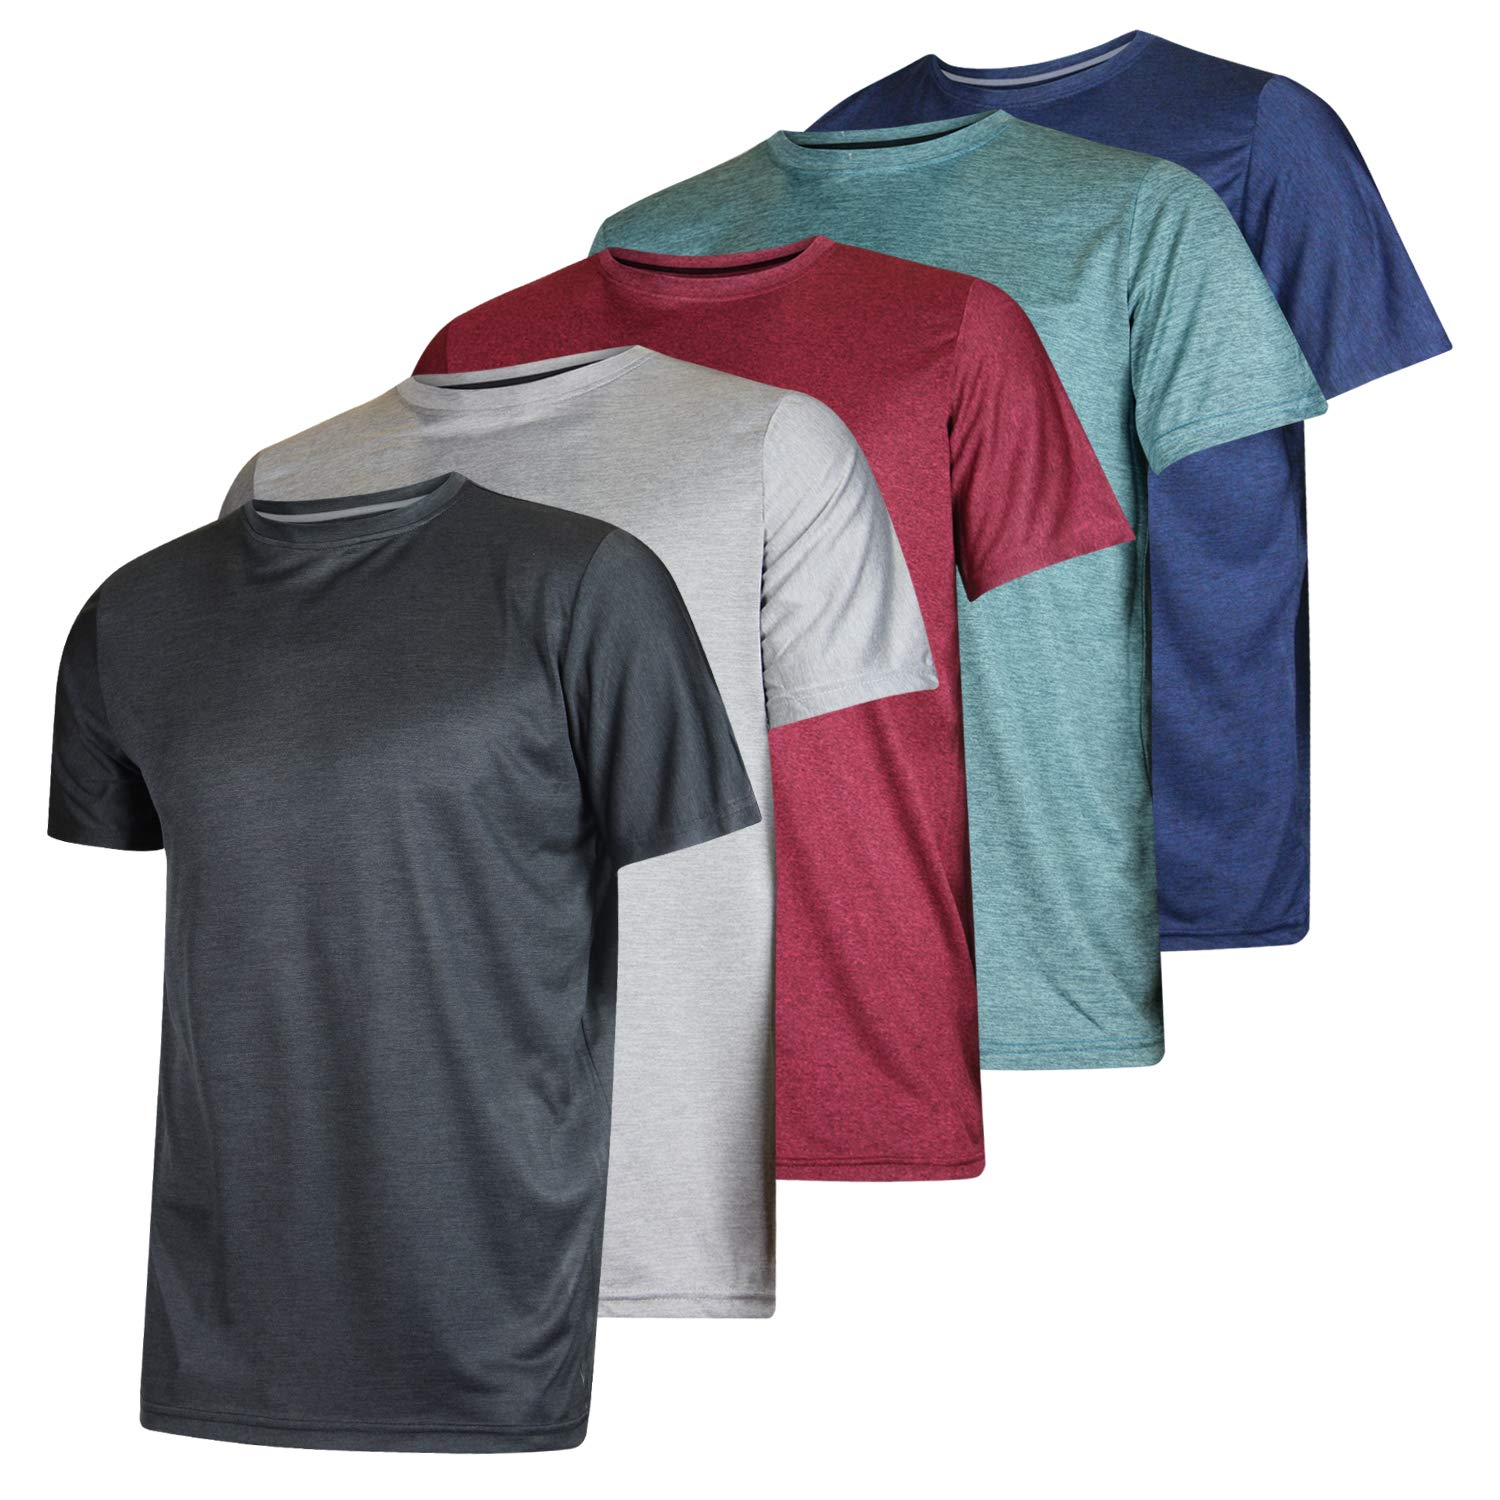 Men's Quick Dry Fit/Dri-Fit Short Sleeve Active Wear Training Athletic Essentials Crew T-Shirt Fitness Gym Workout Casual Undershirt Top - 5 Pack,Set 1-L